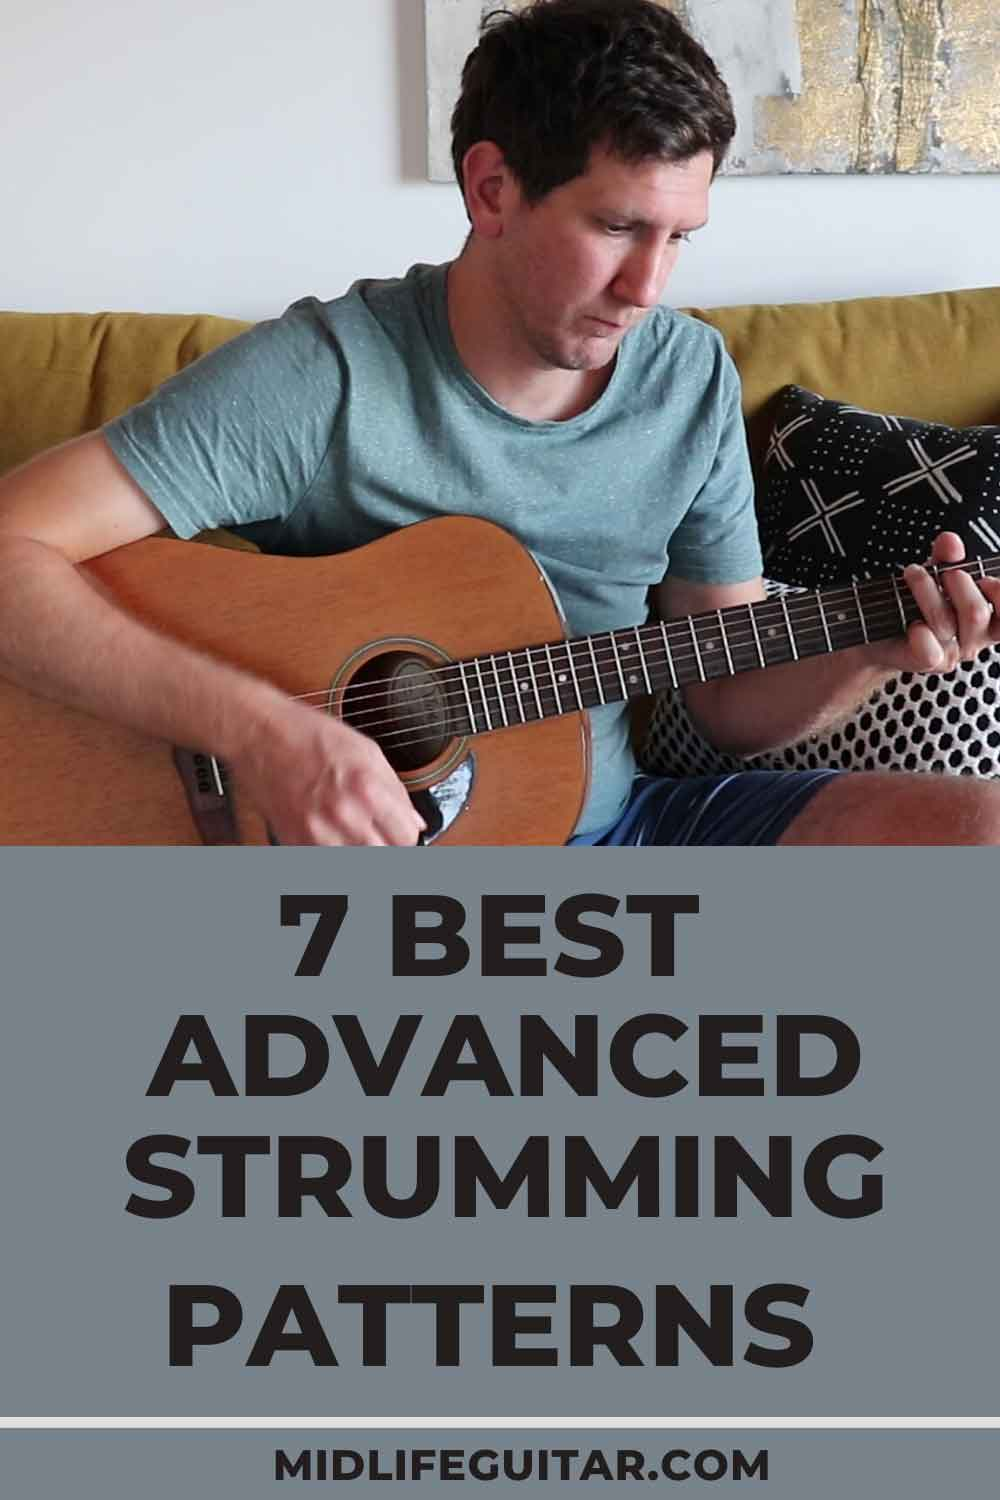 Best Advanced Strumming Patterns